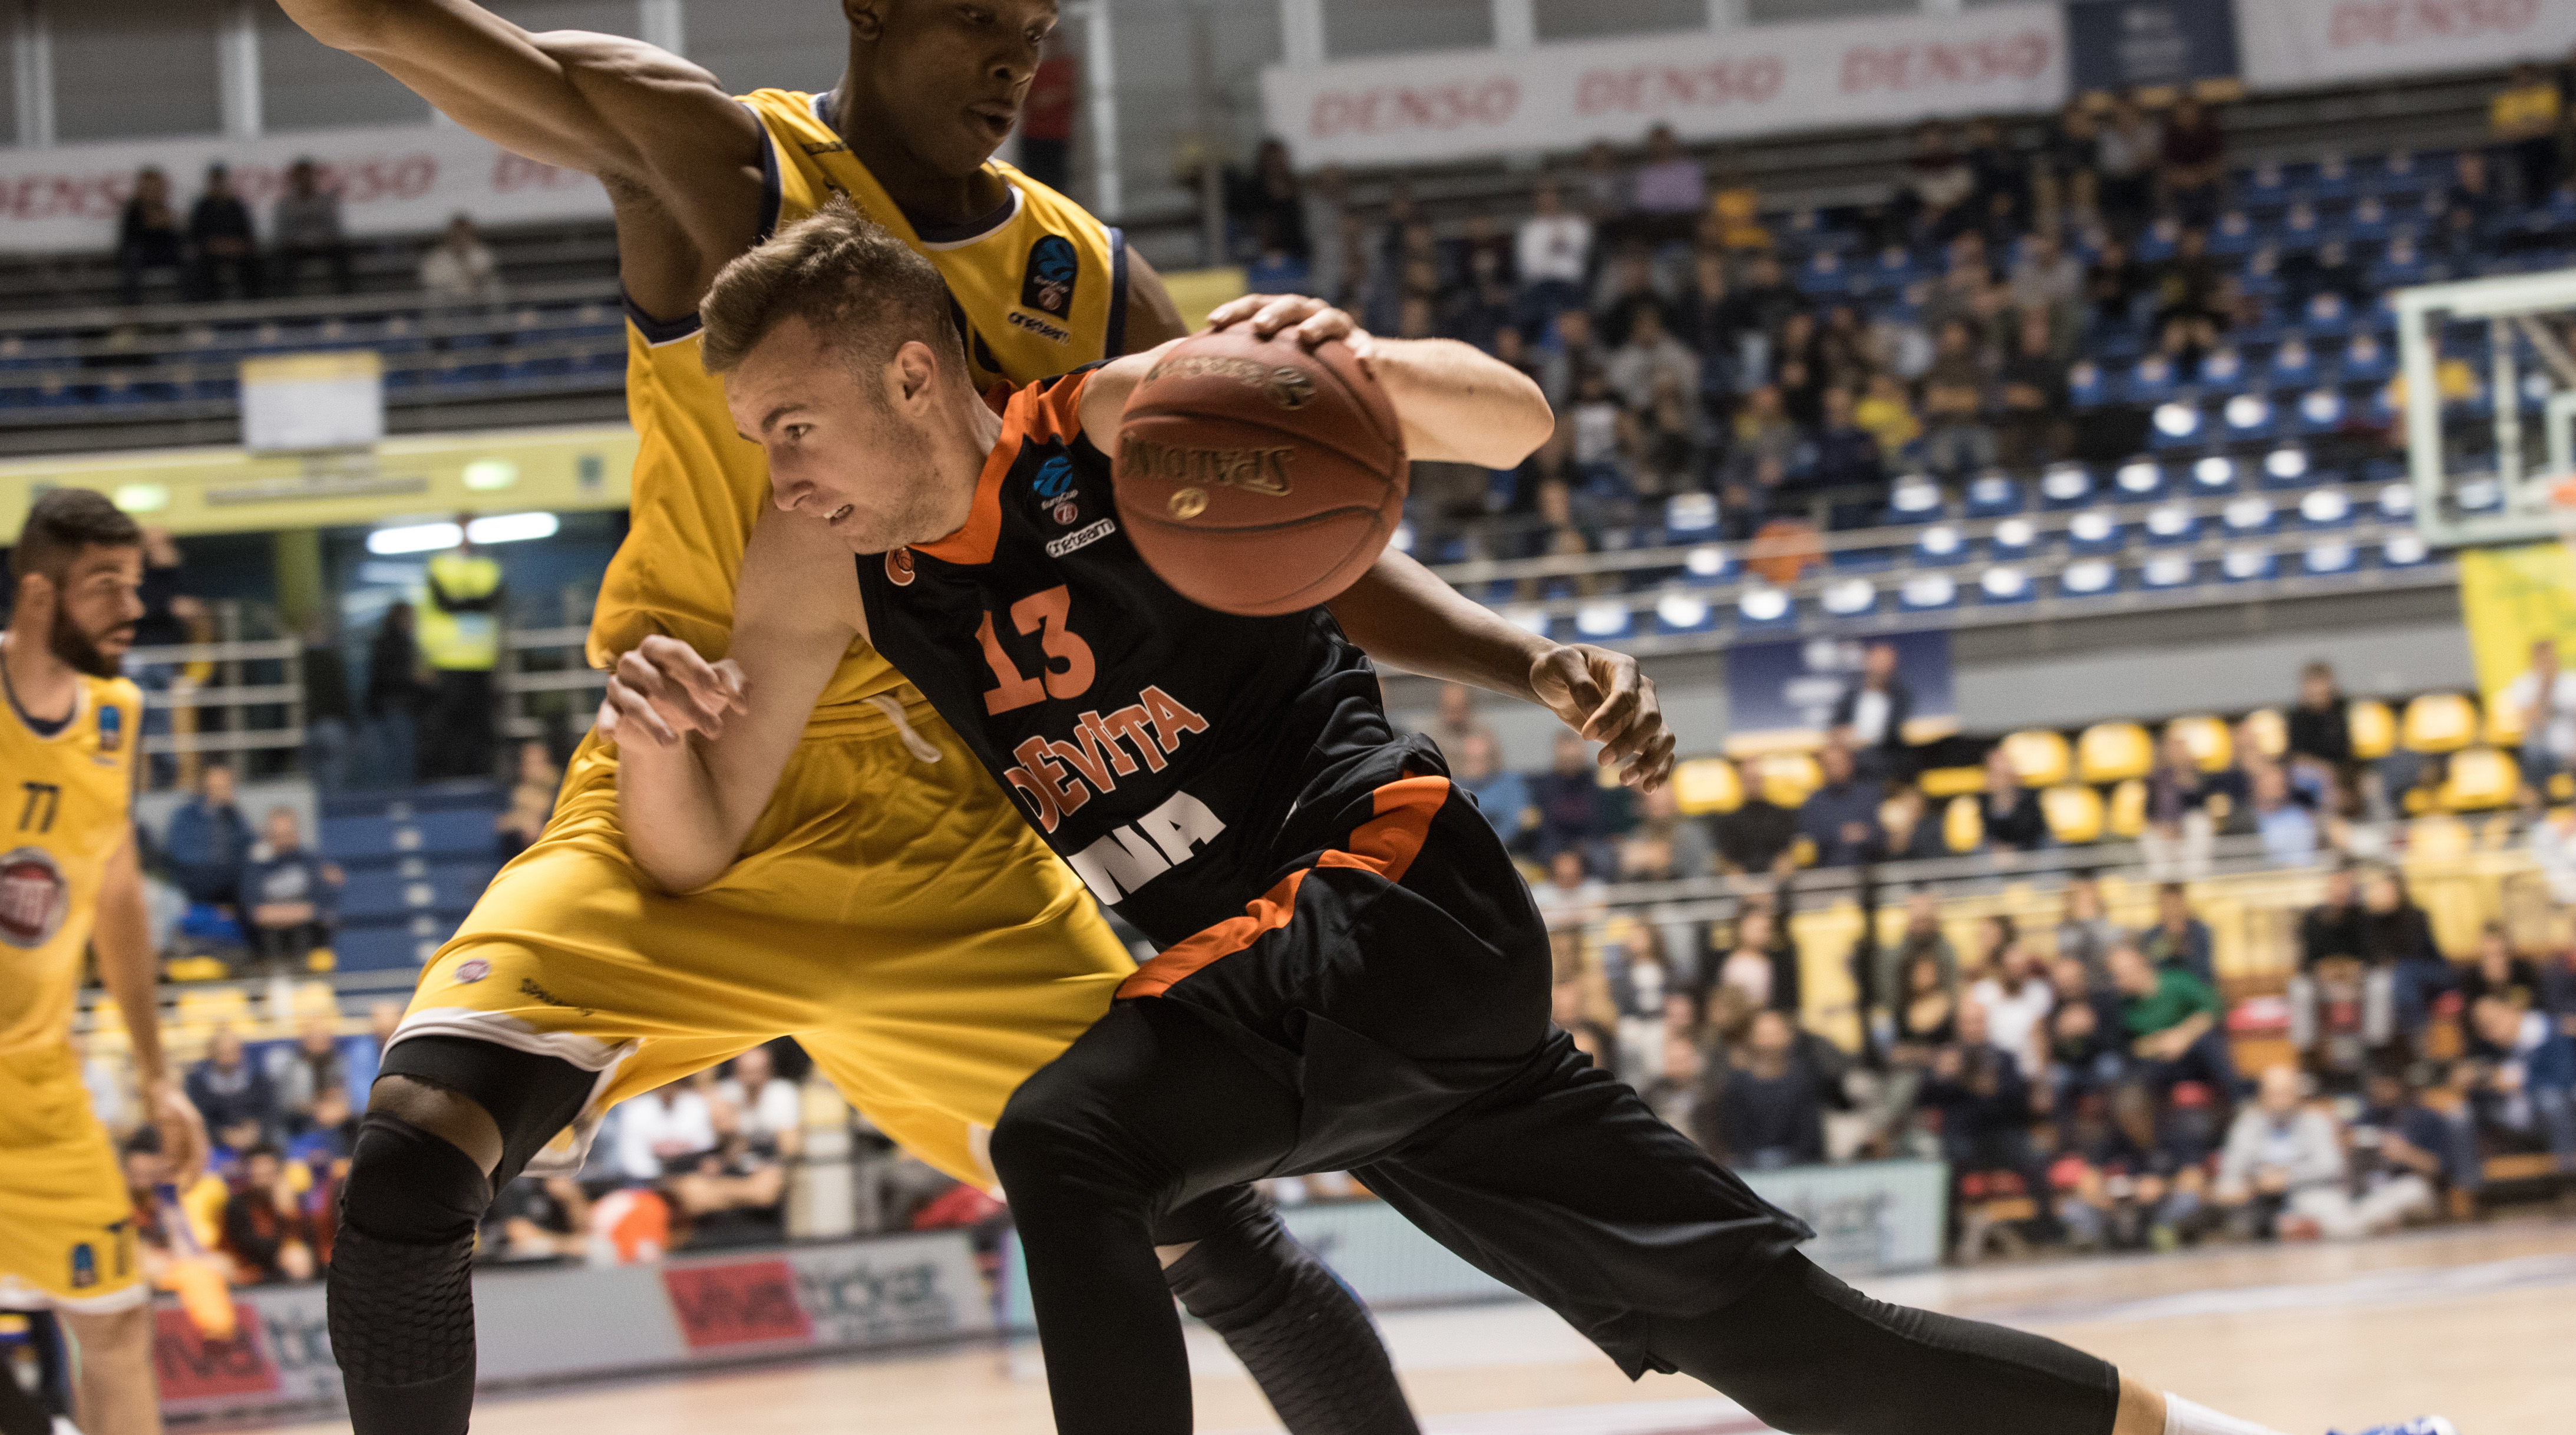 Dzanan Musa (Cedevita Zagreb) during the Eurocup basketball